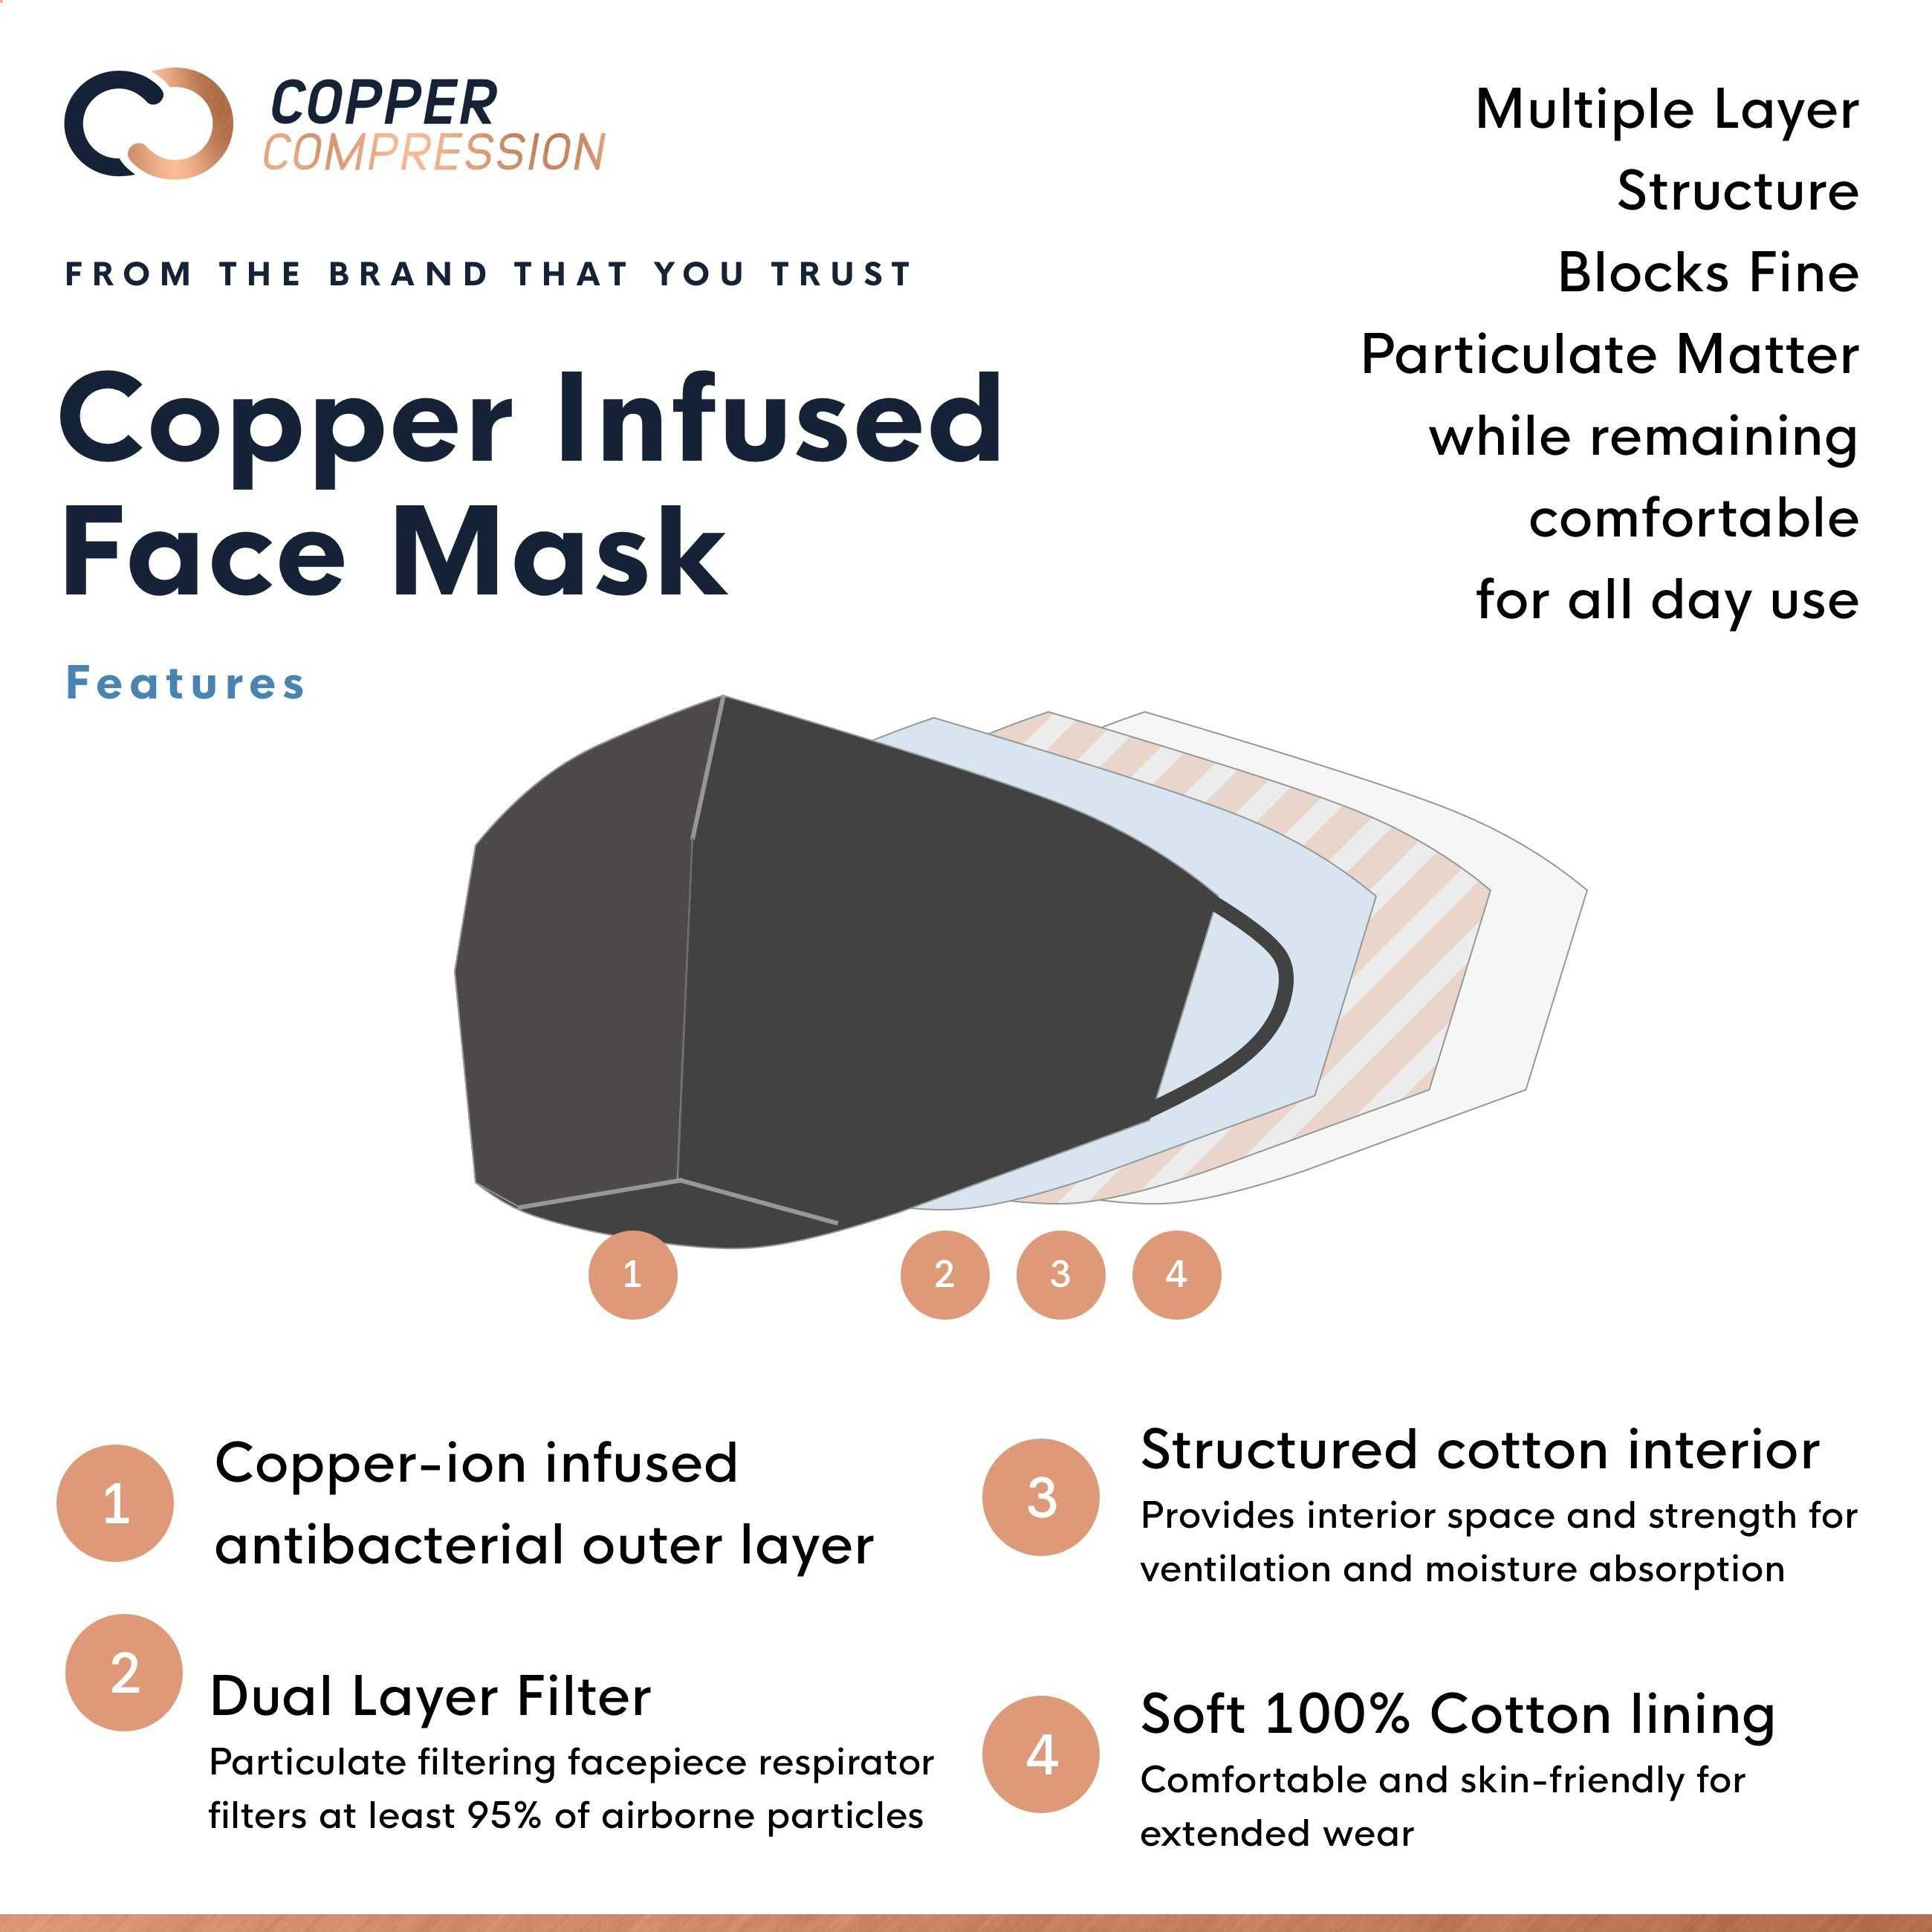 Copper Compression Copper Infused Face Mask 2 Pack in